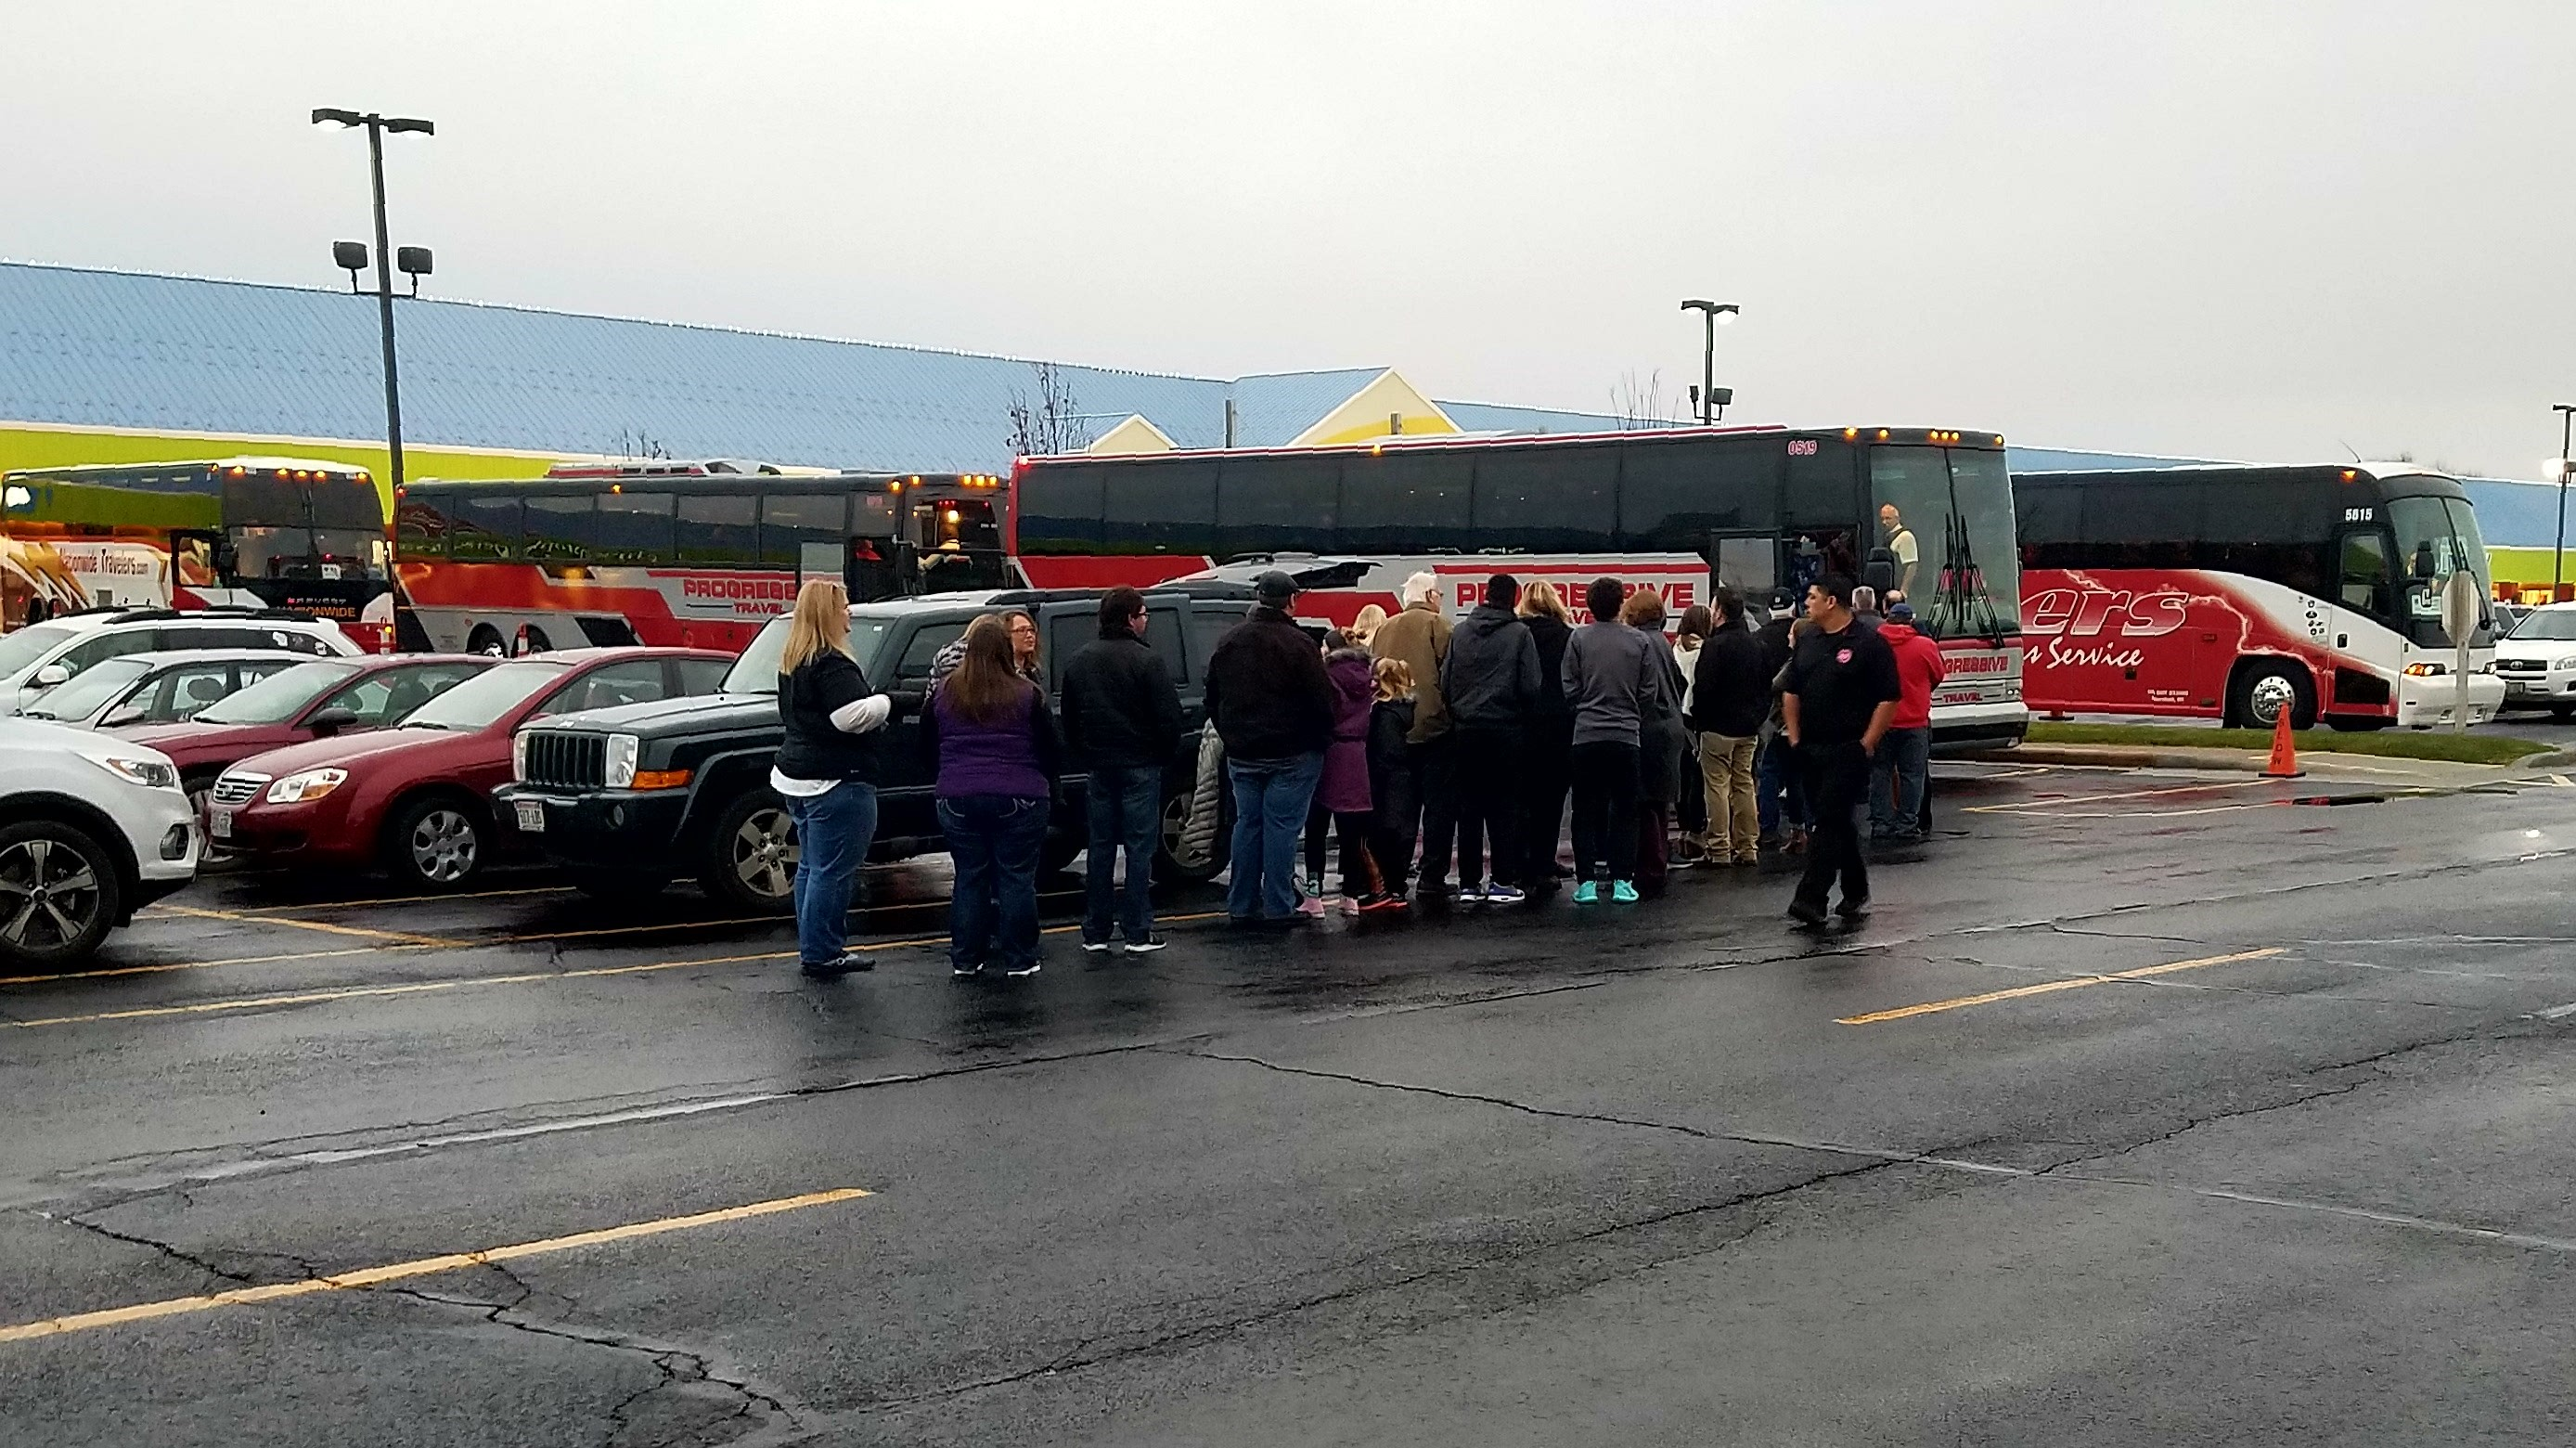 <p>About 400 Wisconsin Herd season ticket holders boarded buses in Oshkosh to make their way to Milwaukee to see the team's first game, November 17, 2017. (WLUK)</p>